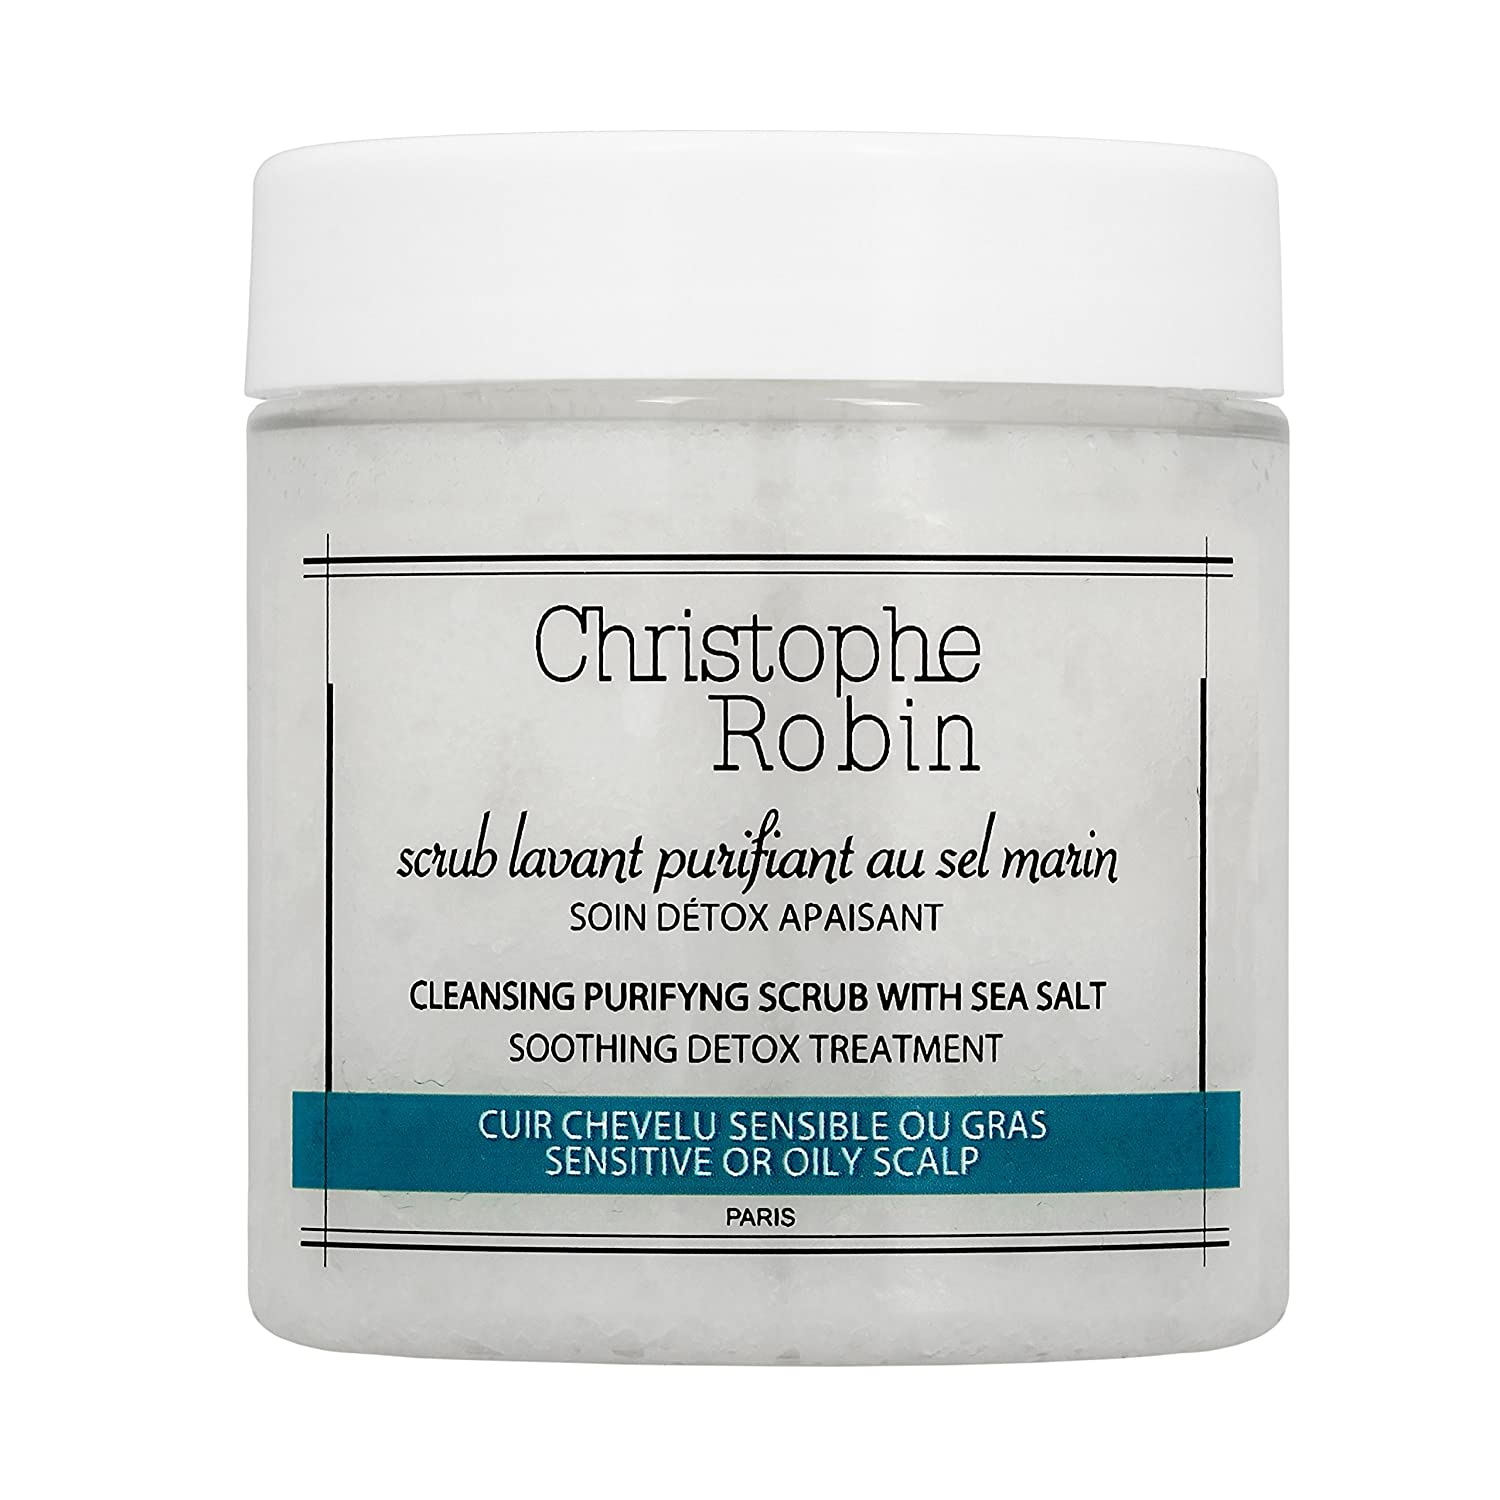 Christophe Robin Cleansing Purifying Scrub with Sea Salt - 75 ml